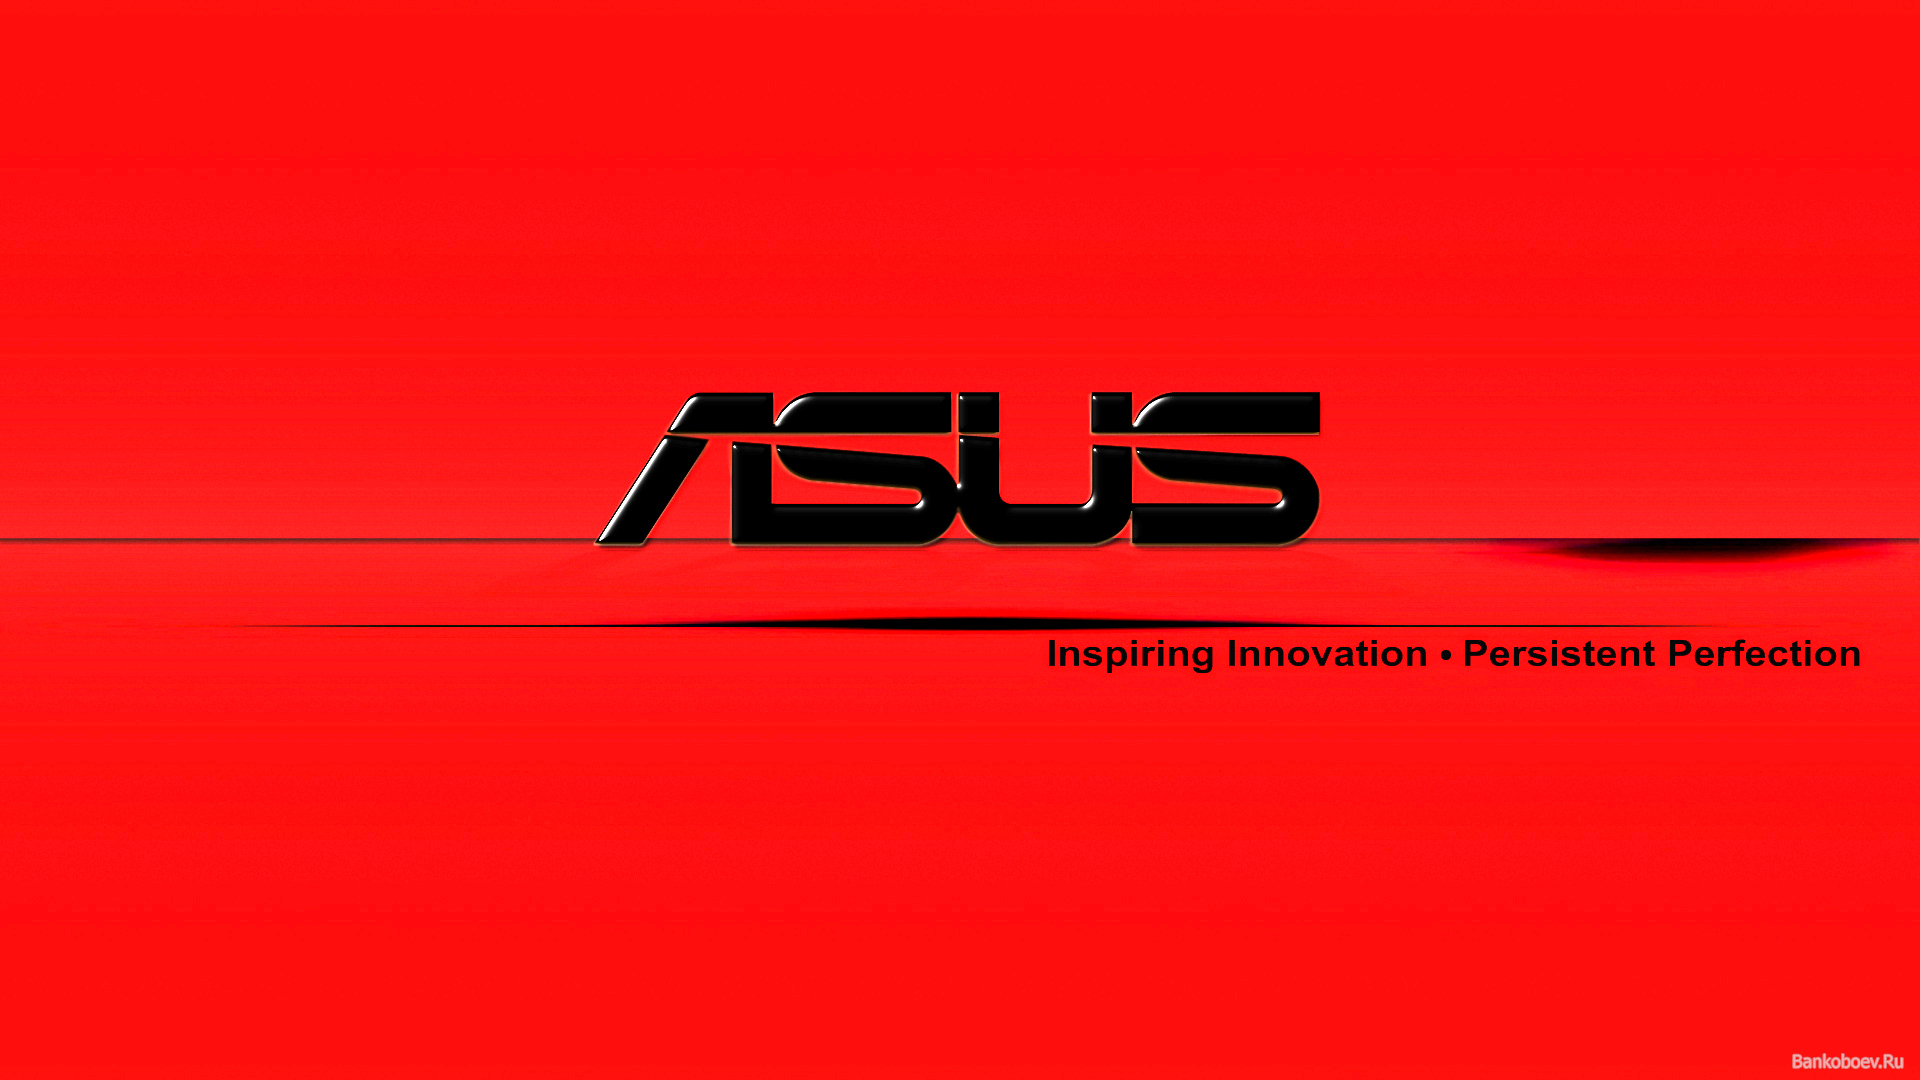 Asus HD Wallpapers  Backgrounds  Wallpaper  1920x1080